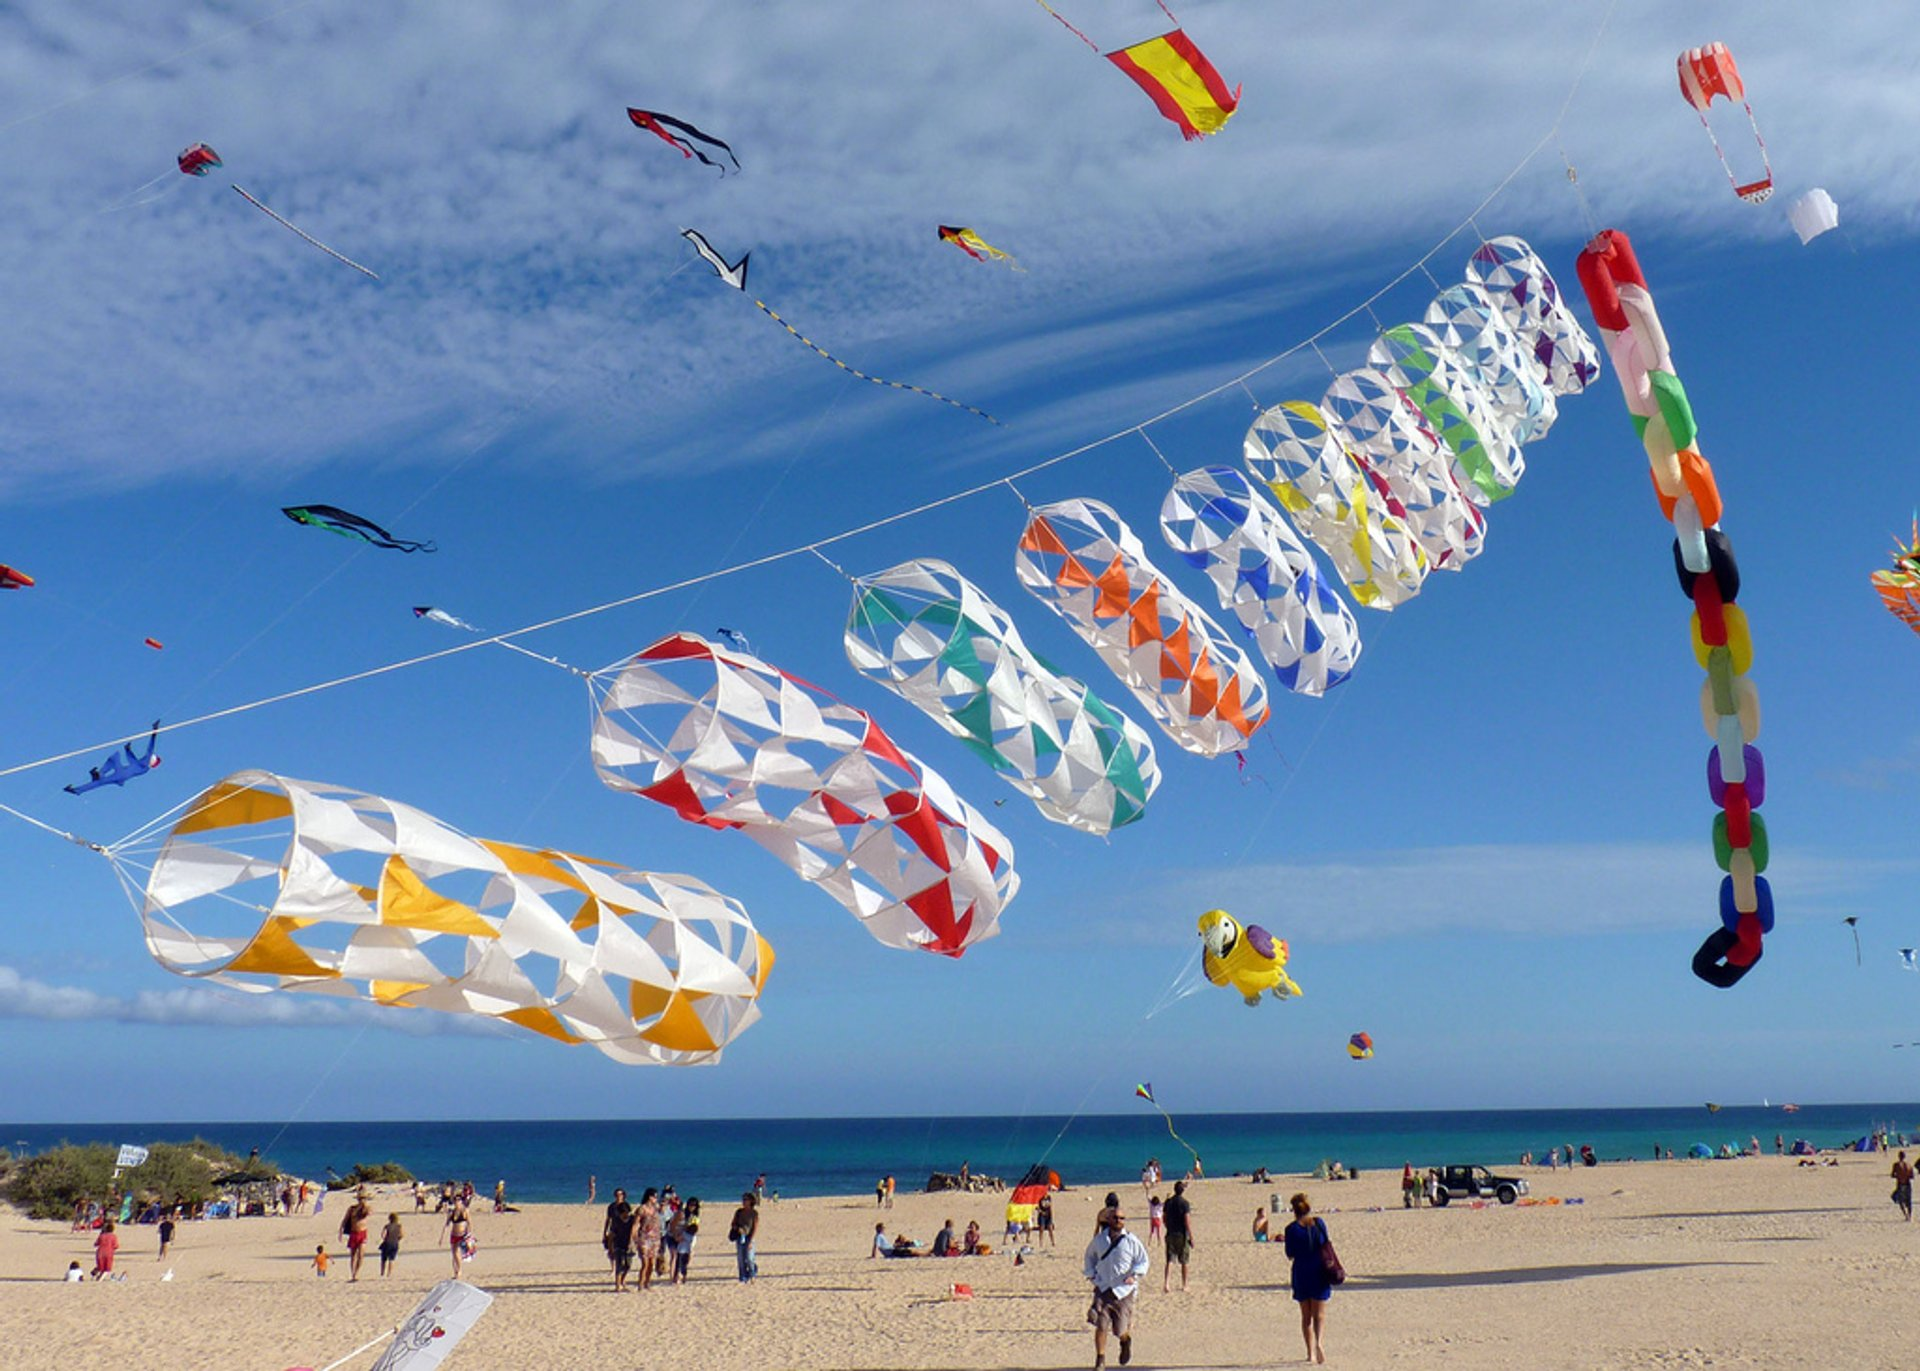 Fuerteventura Kite Festival in Canary Islands - Best Season 2020